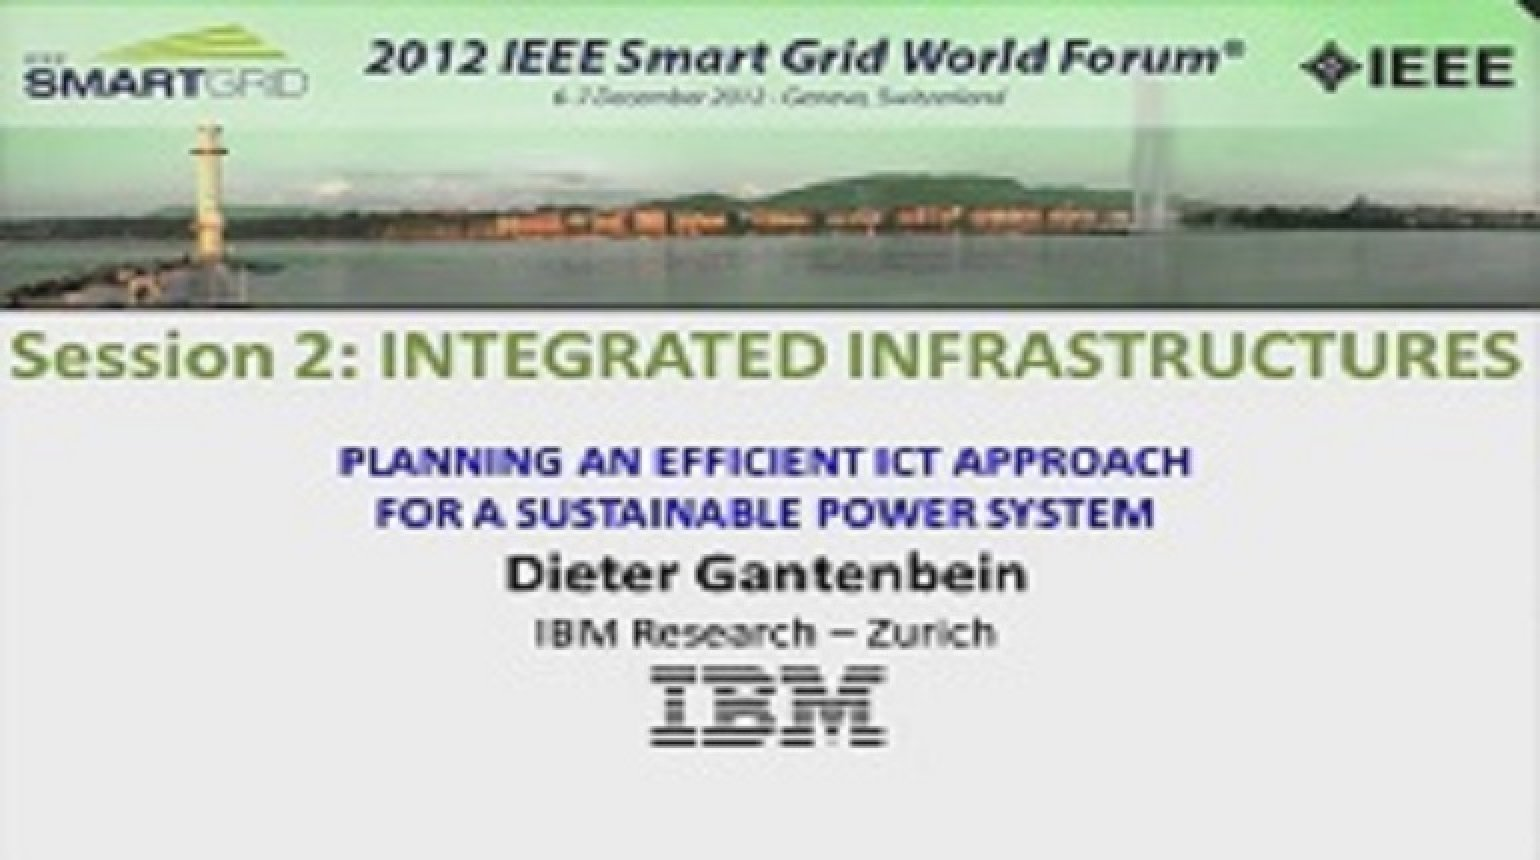 Planning an Efficient ICT Approach: Dieter Gantenbein